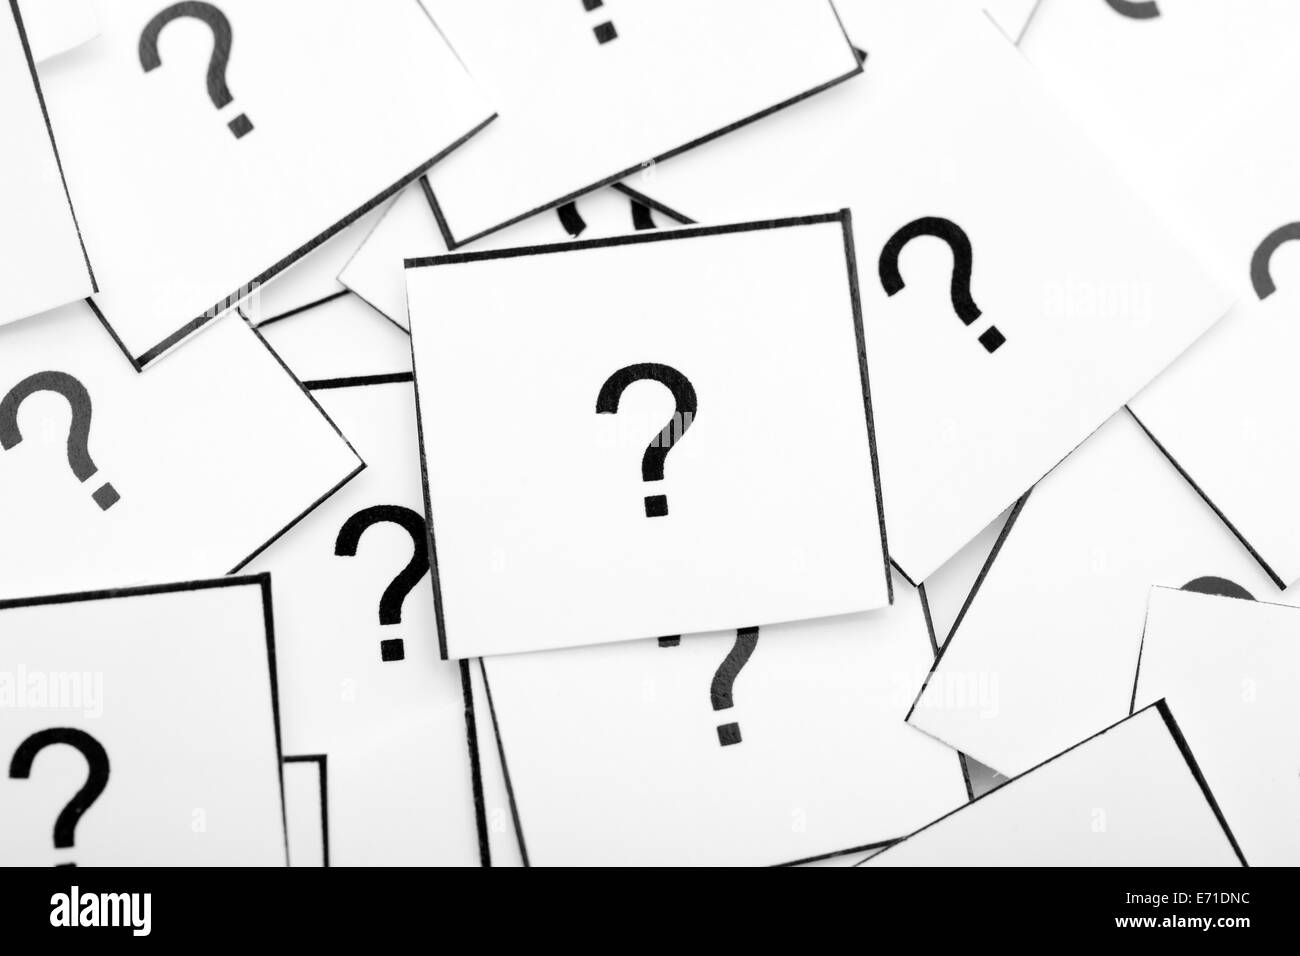 Question Marks. Closeup. - Stock Image